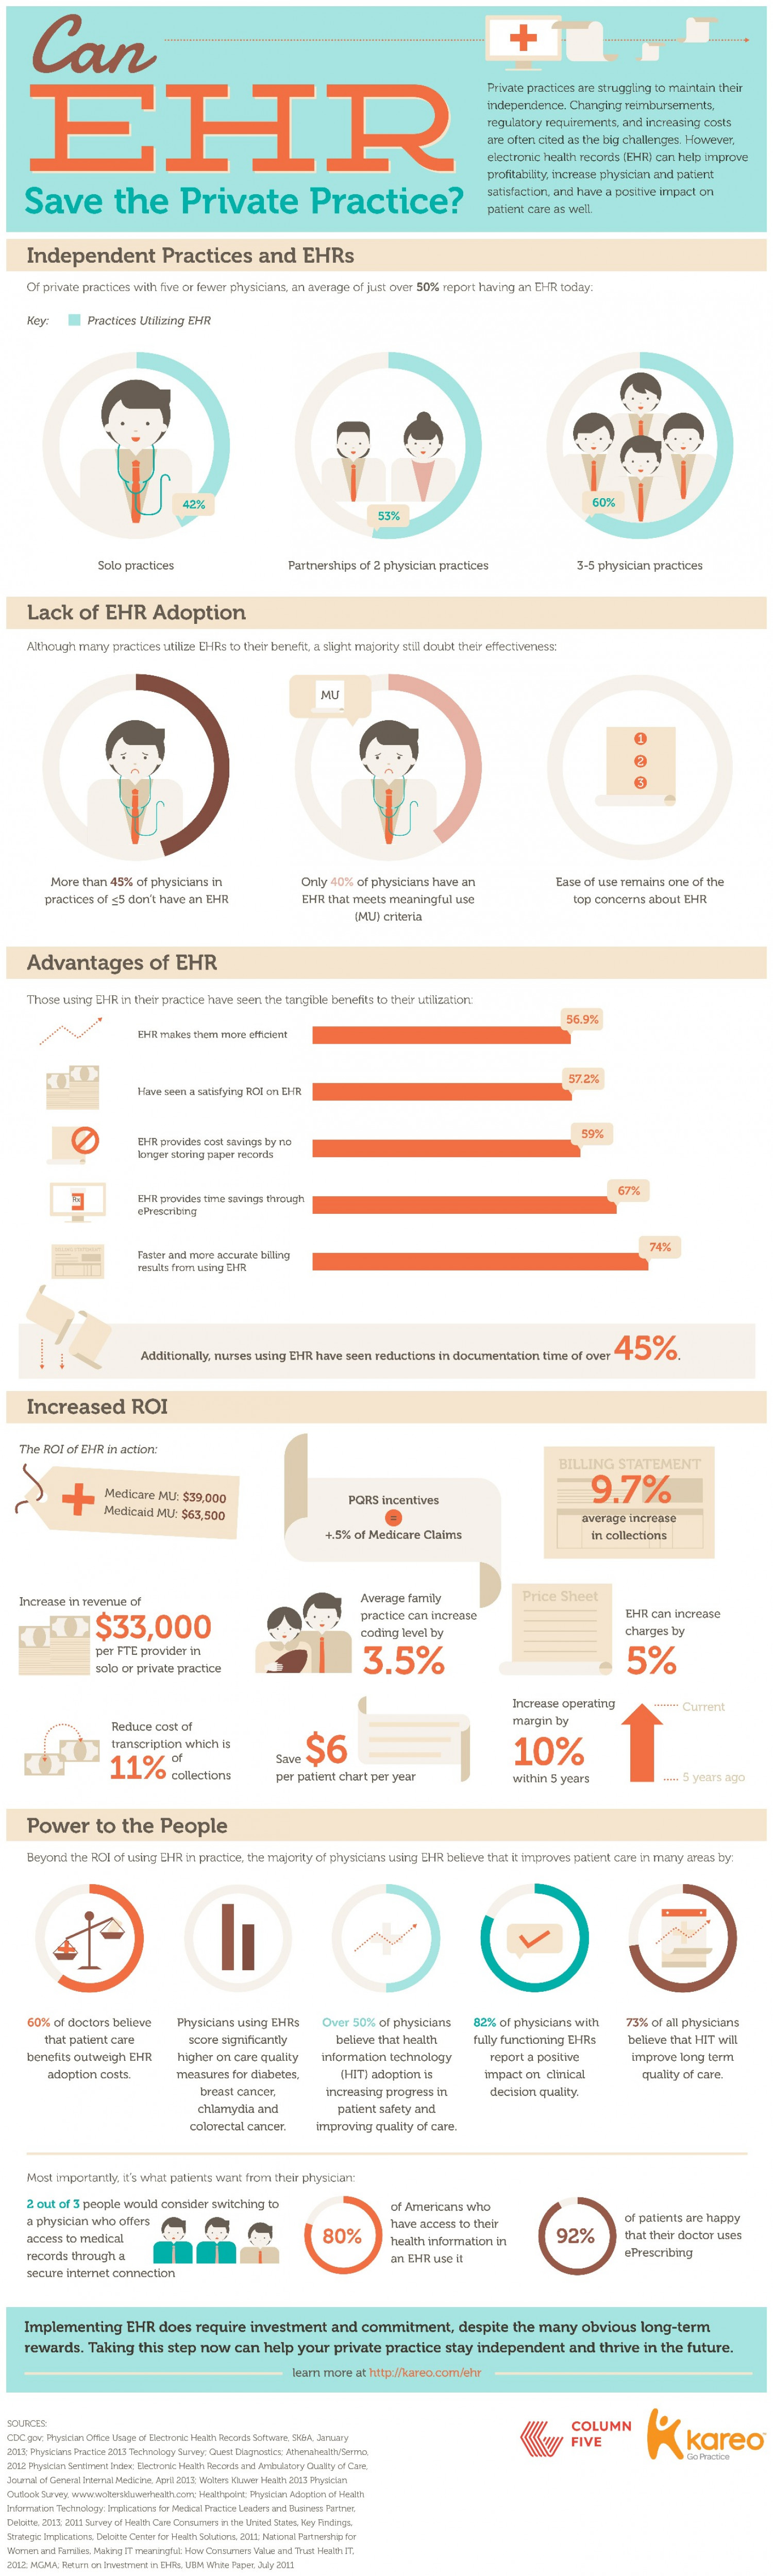 Can EHR Save the Private Practice? Infographic